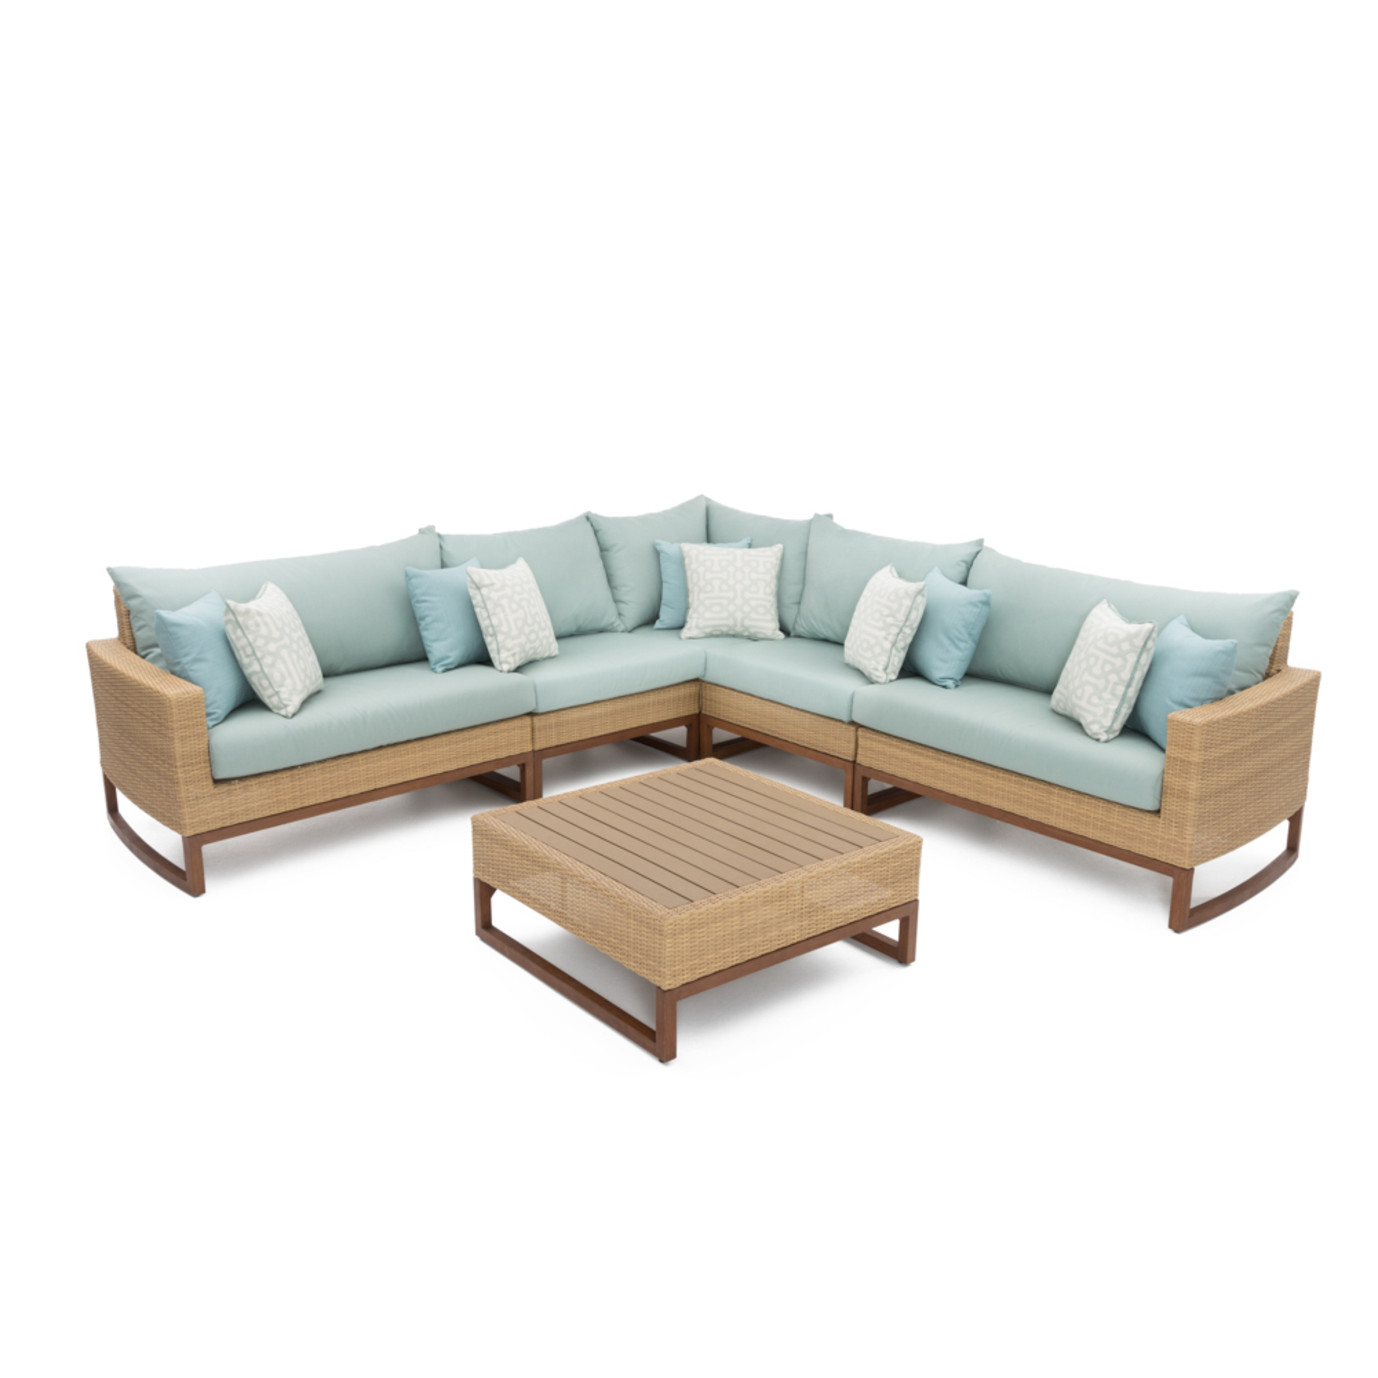 Mili™ 6pc Sofa Sectional - Spa Blue